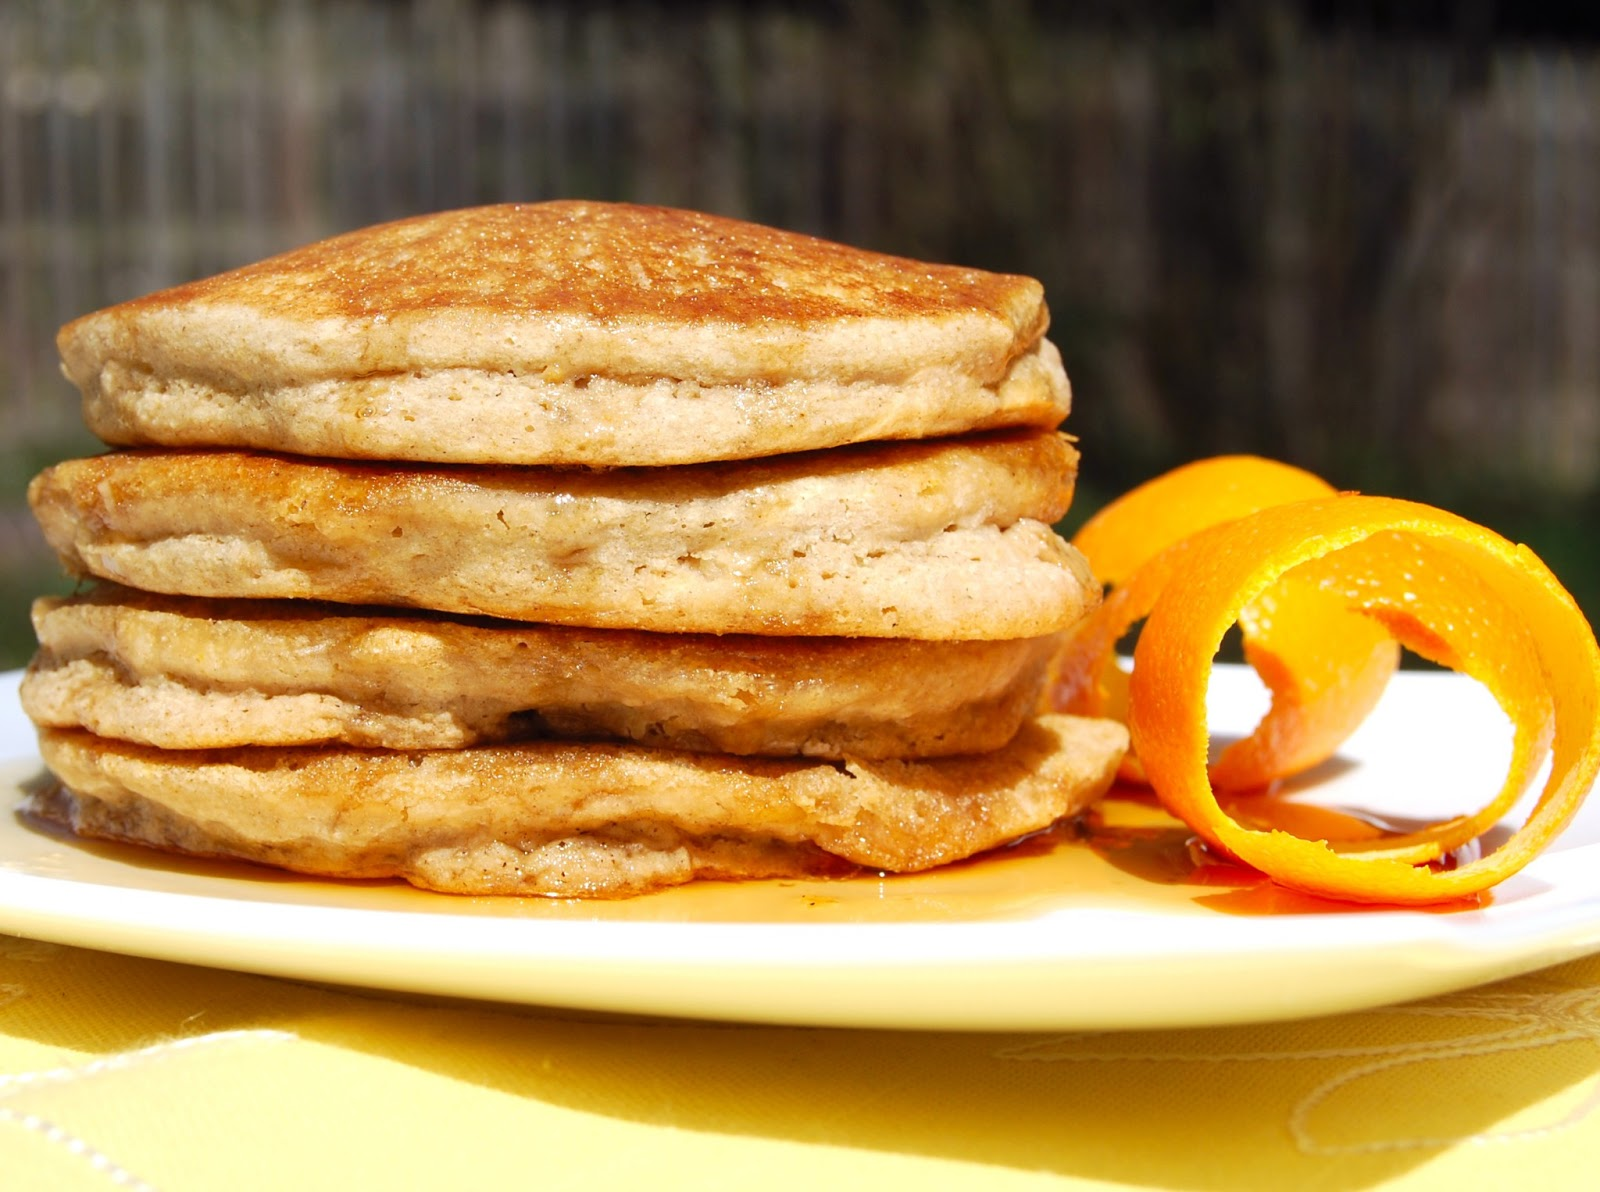 How to Change Up Your Breakfast If You're Trying to Cut Back on Animal Products